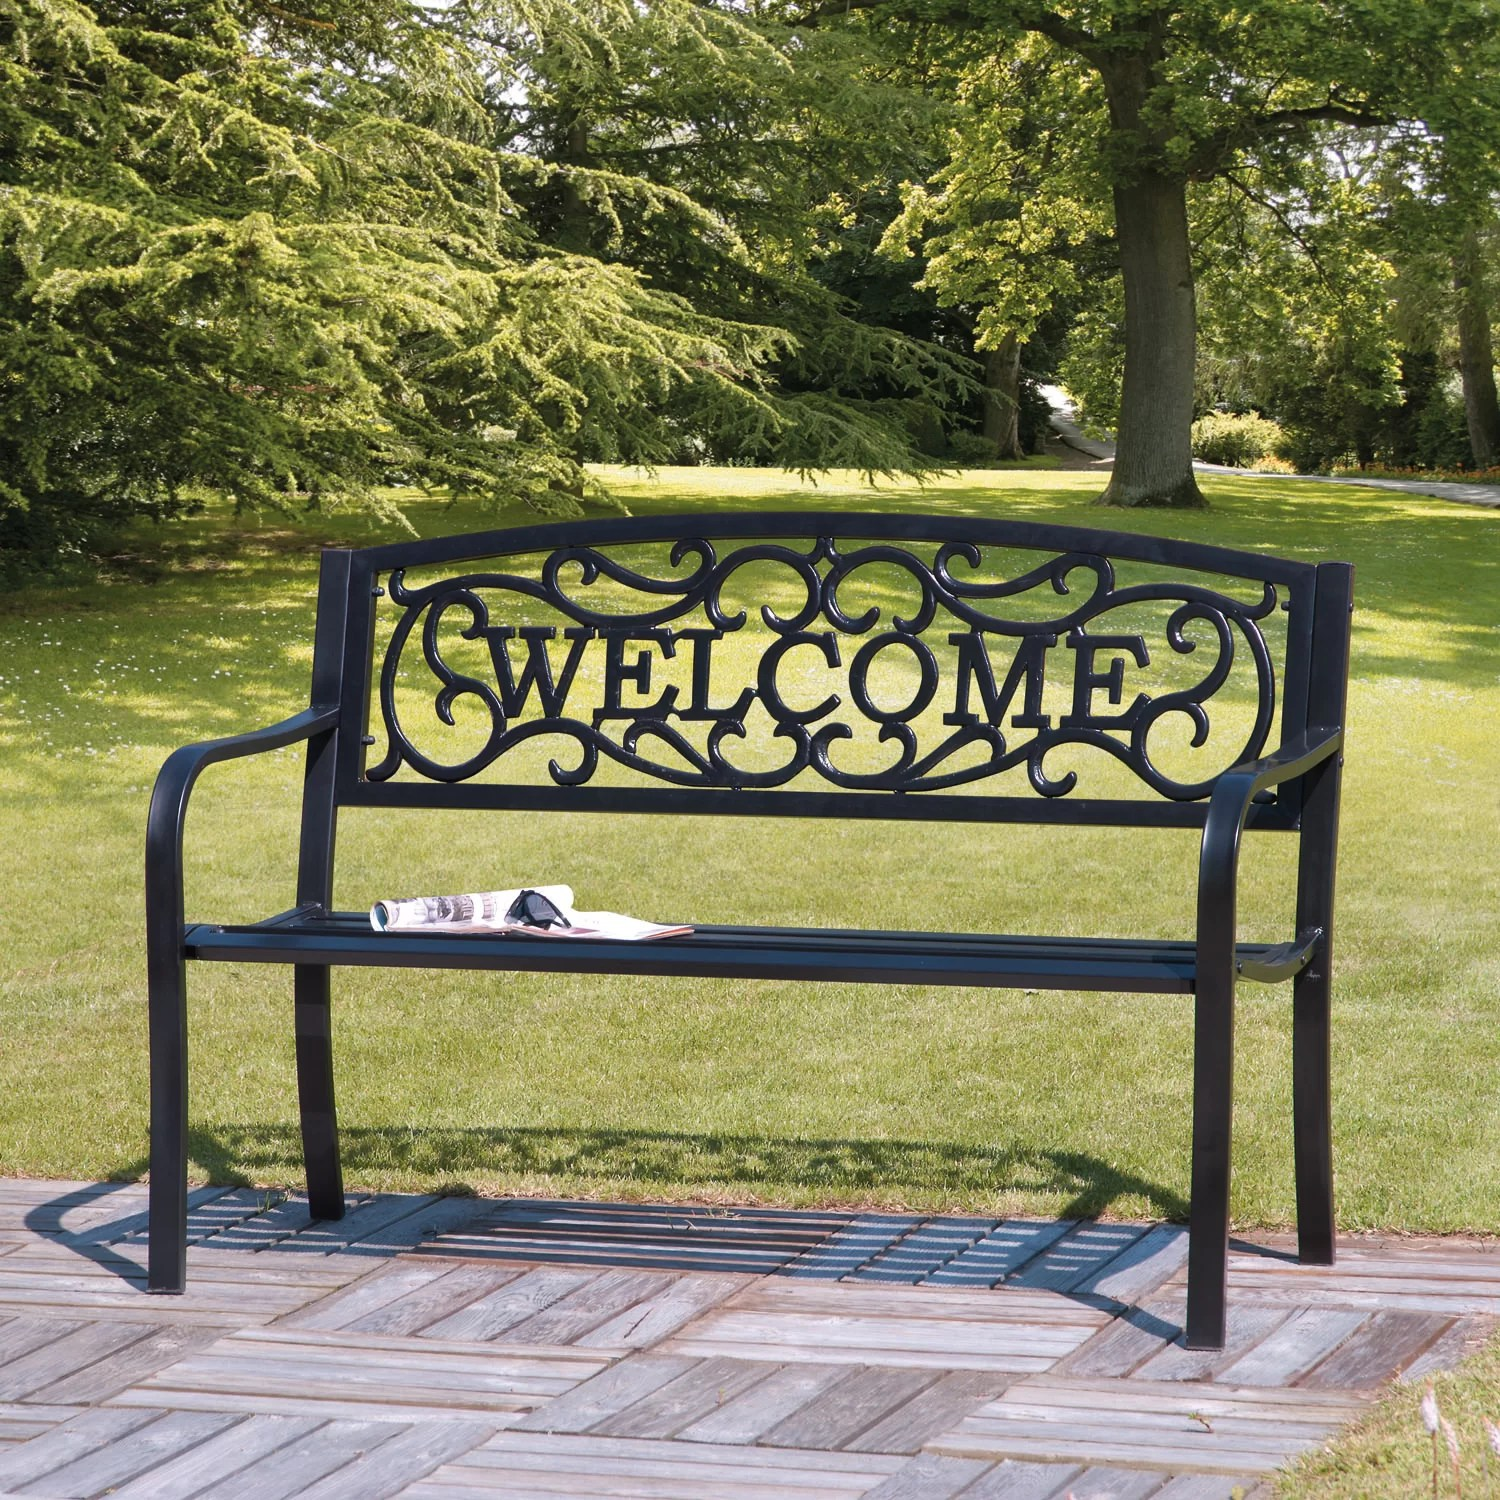 SunTime Outdoor Living Cast Iron Garden Bench & Reviews ... on Suntime Outdoor Living  id=87314